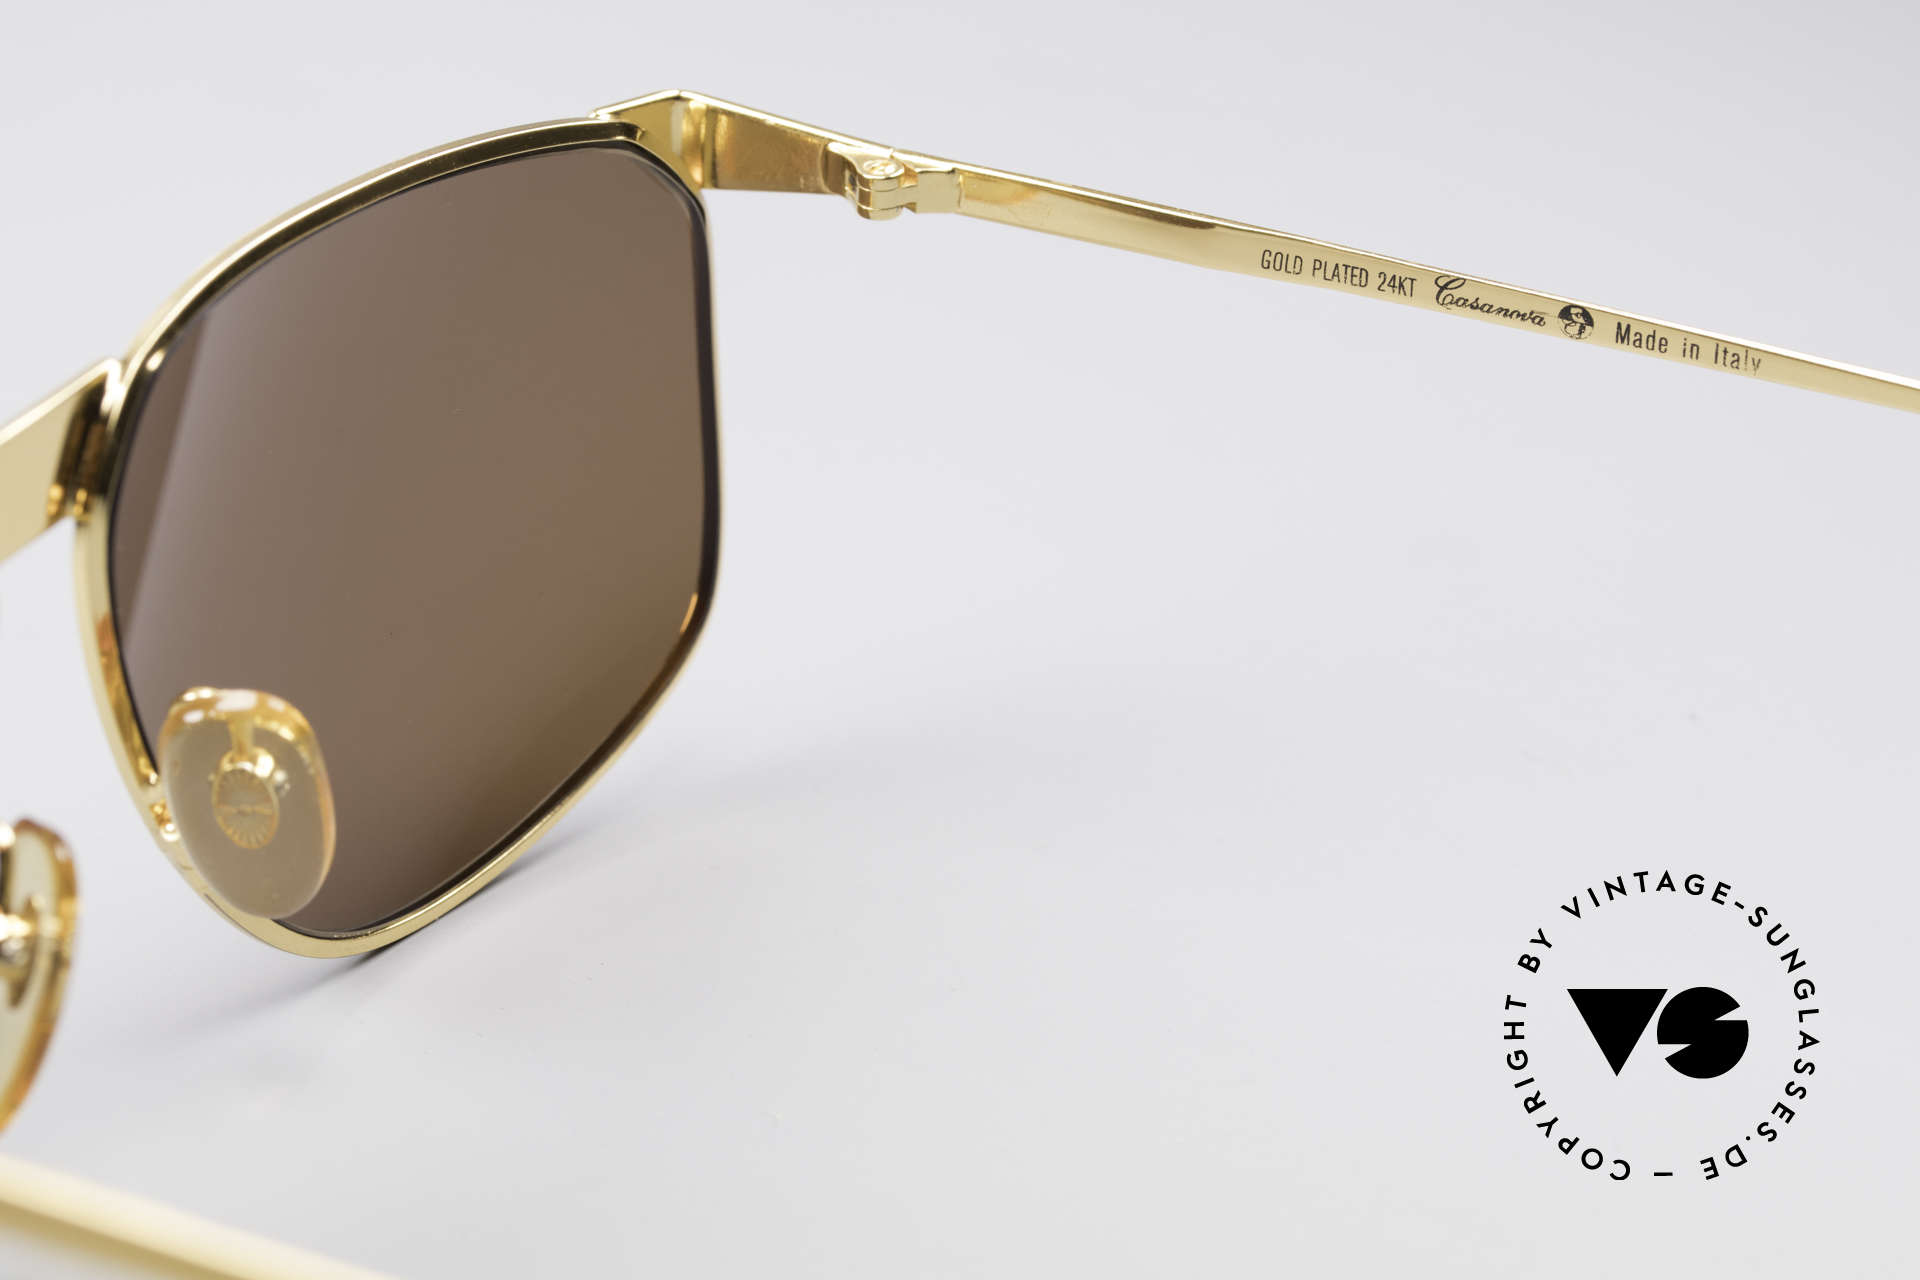 Casanova NM7 24KT Gold Plated Shades, frame can be glazed with optical lenses of any kind, Made for Men and Women